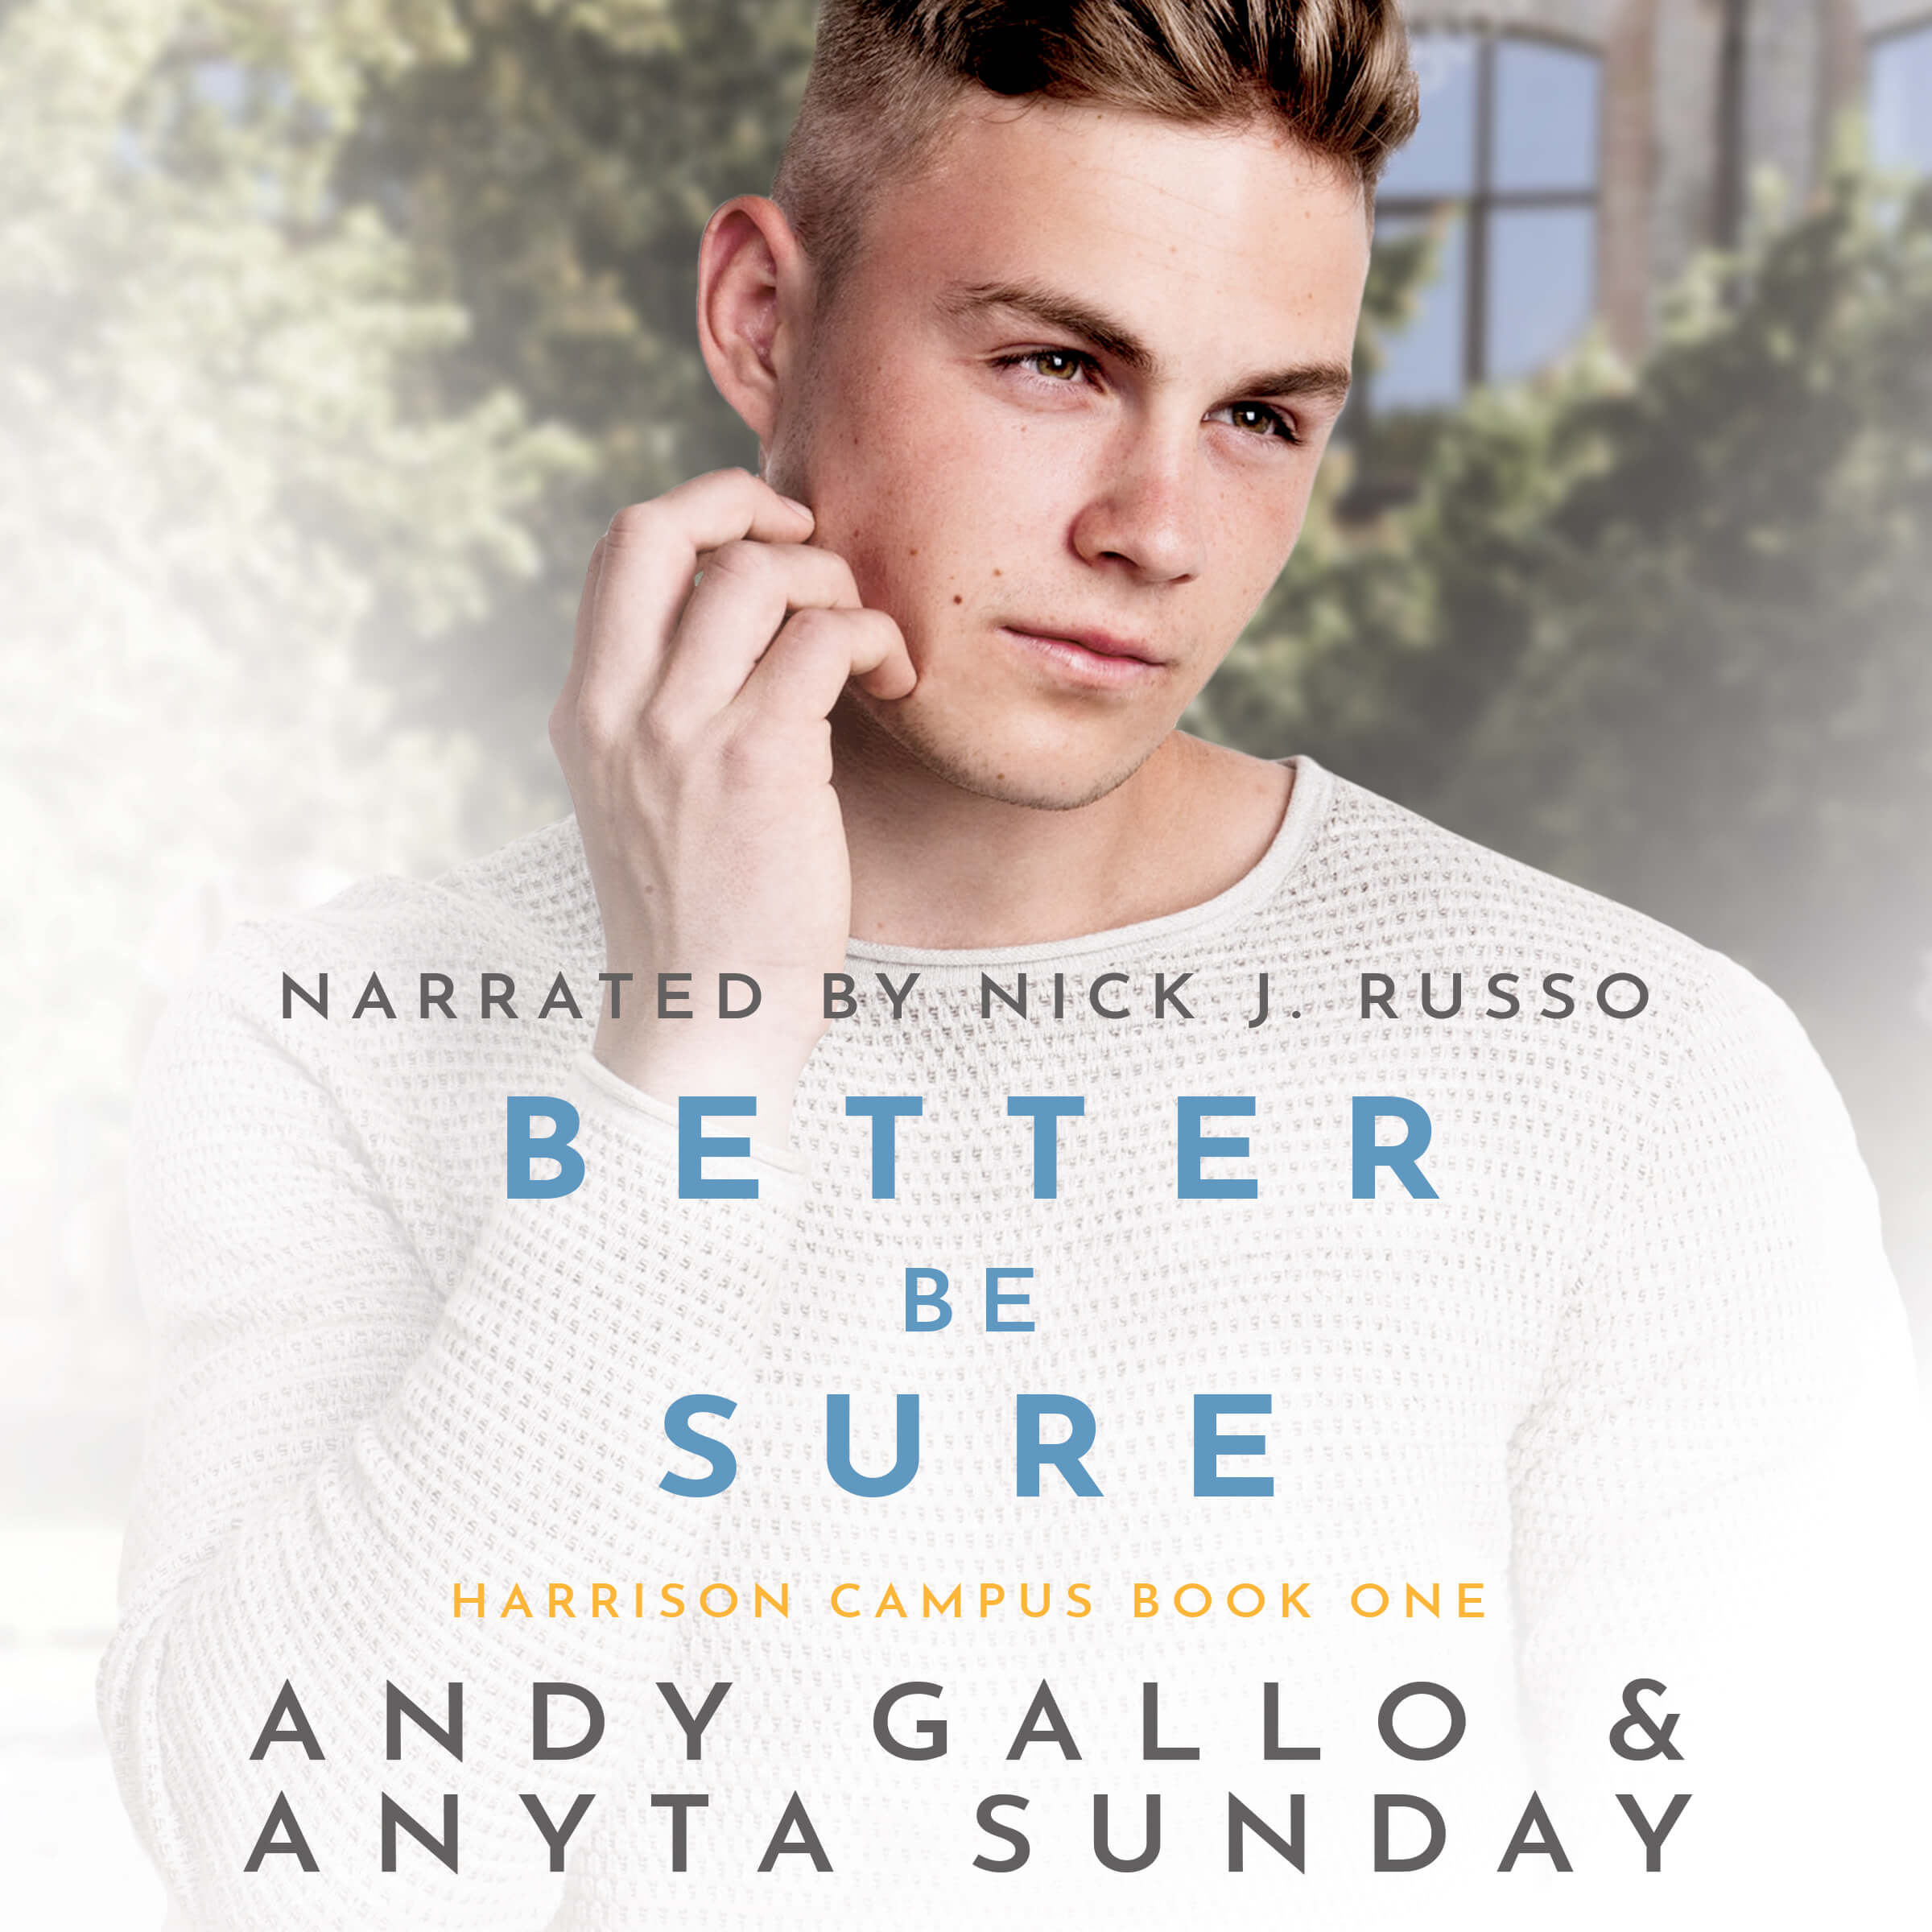 Audiobook of Gay Romance Novel Better be Sure by Anyta Sunday and Andy Gallo